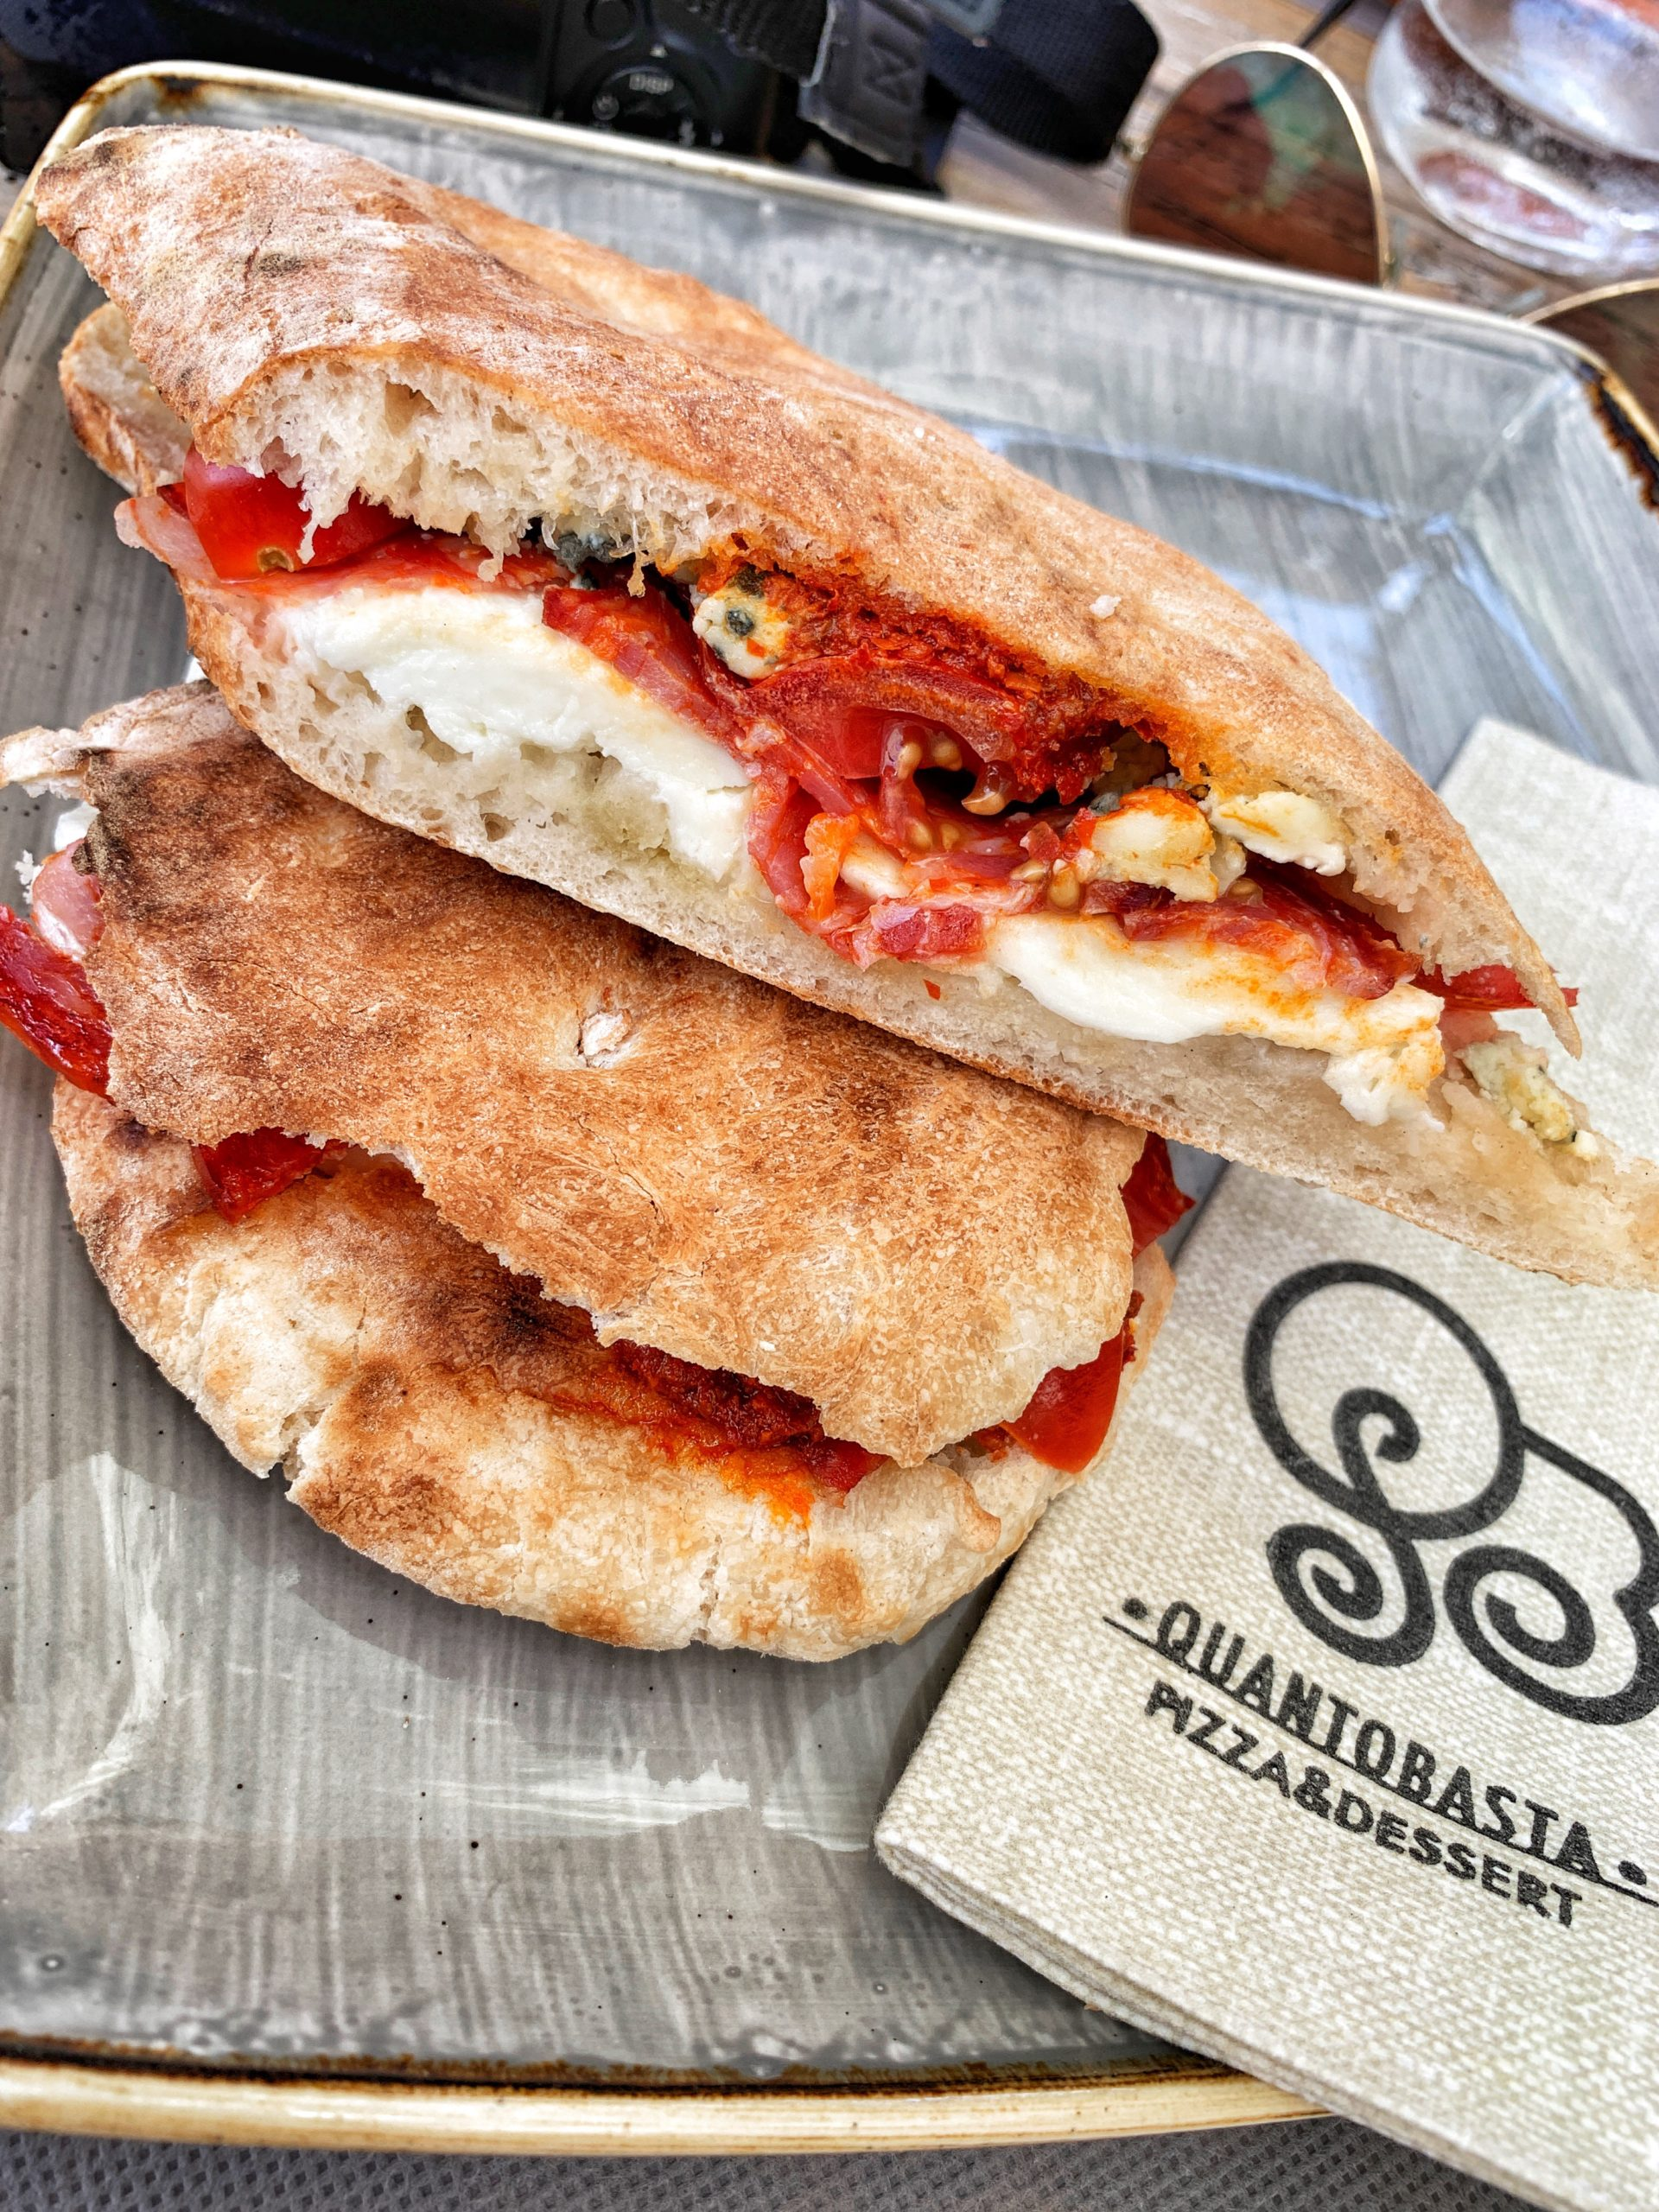 Puccia - a typical regional street food served up in Puglia